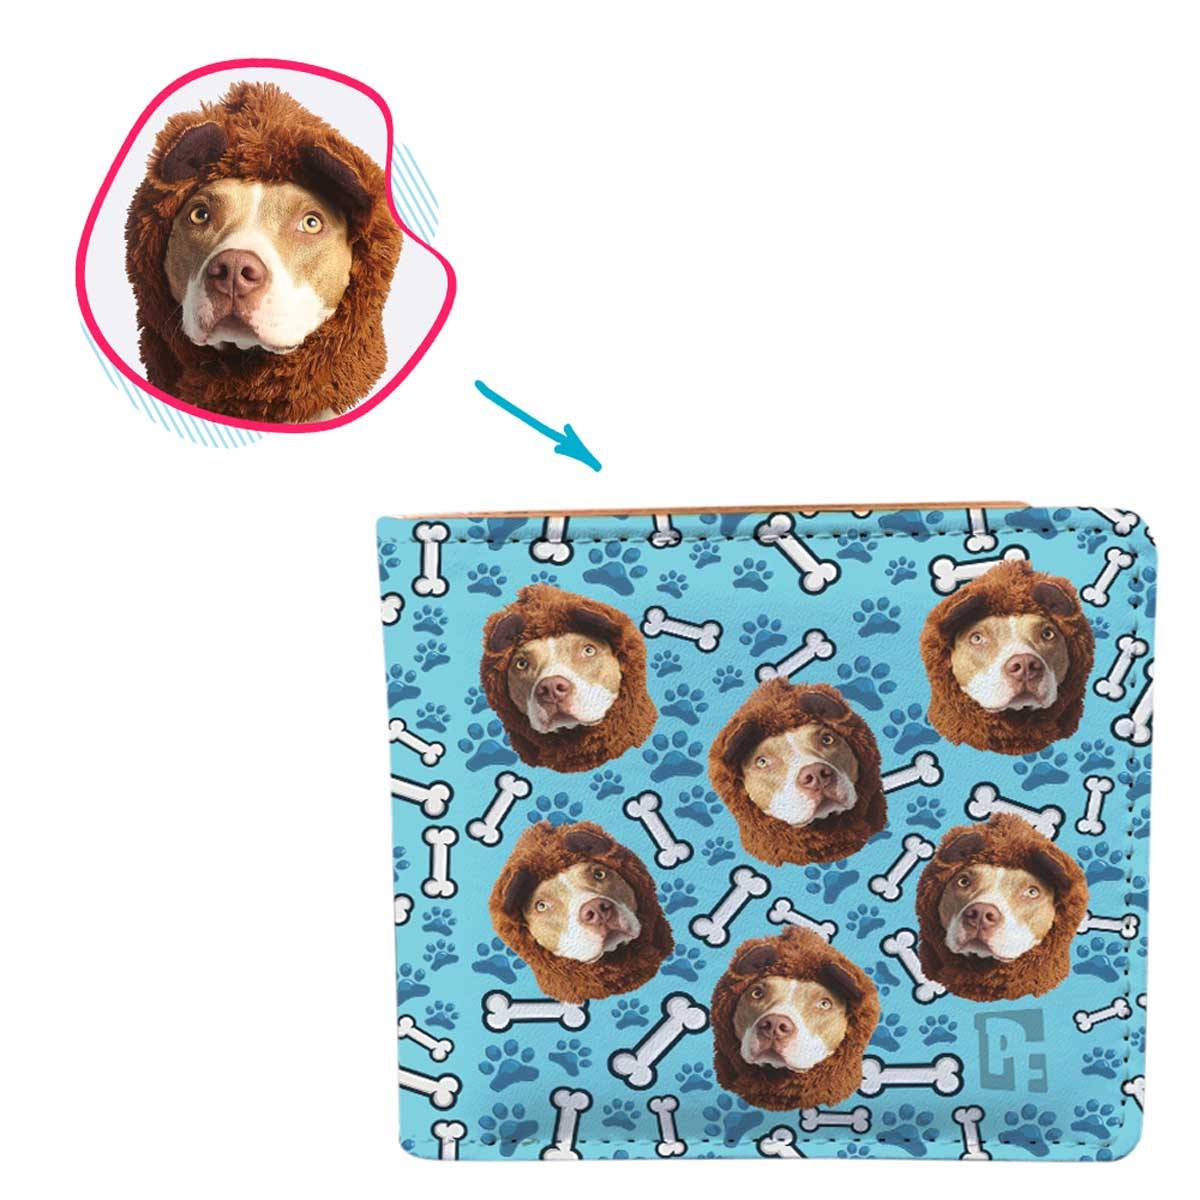 blue Dog wallet personalized with photo of face printed on it